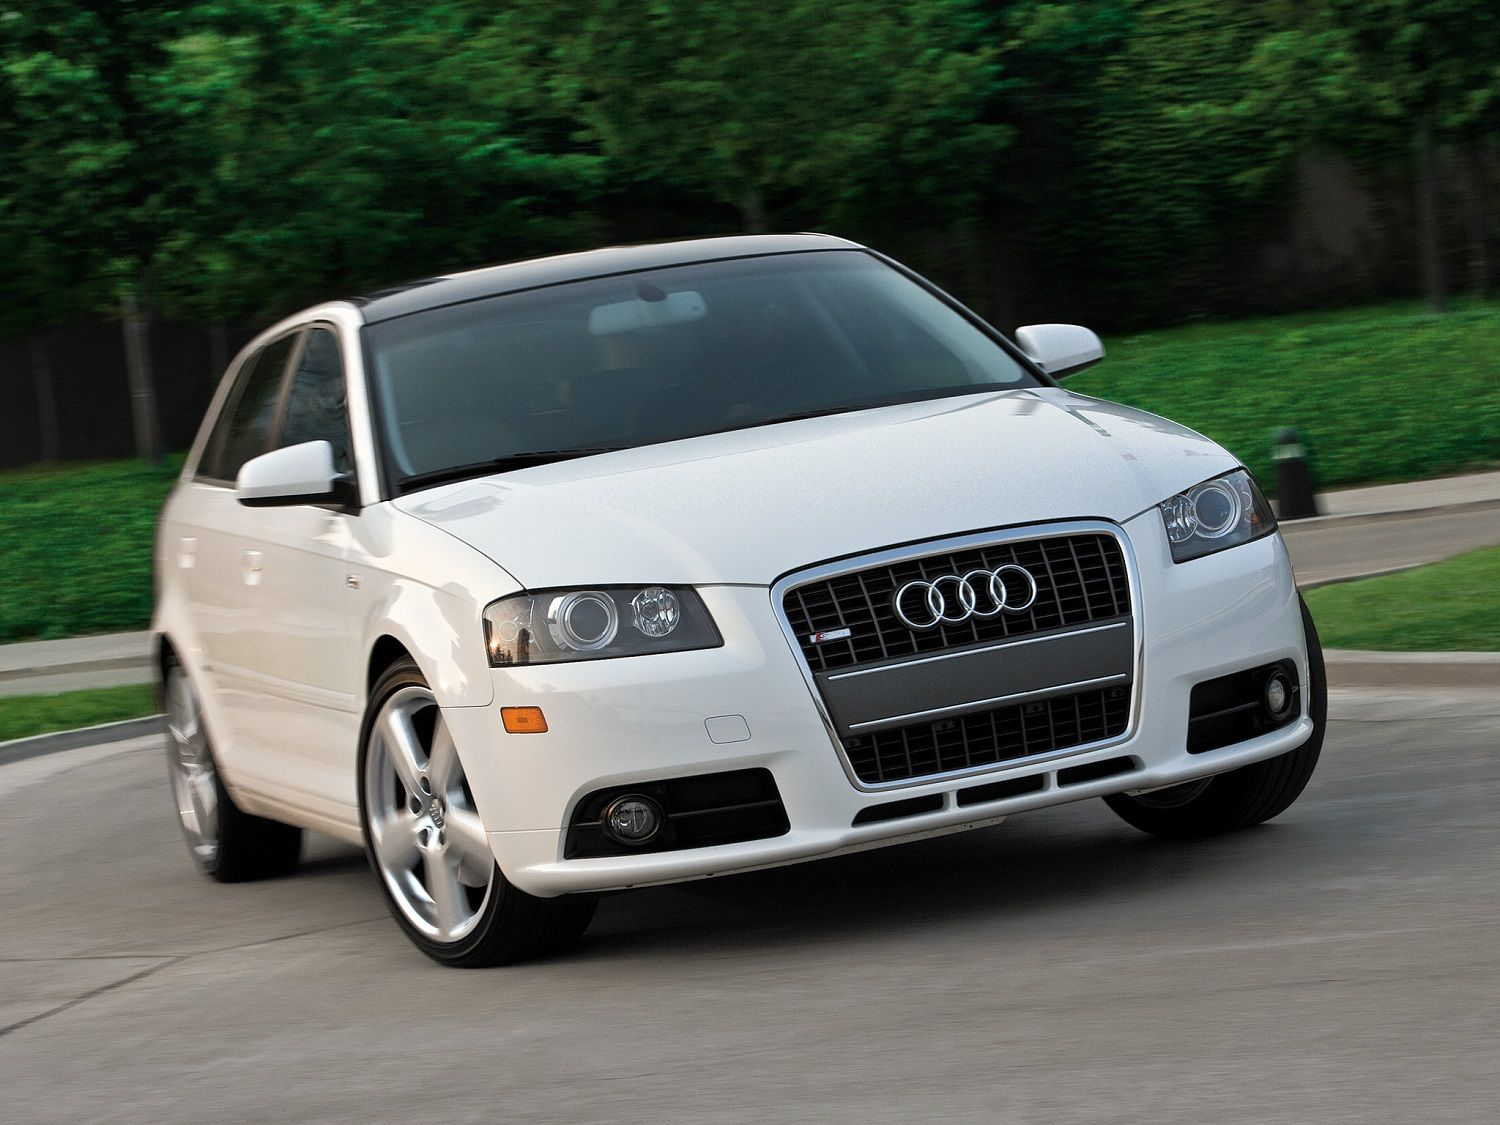 Online Source For Best Used Cars Under 5000 Dollars